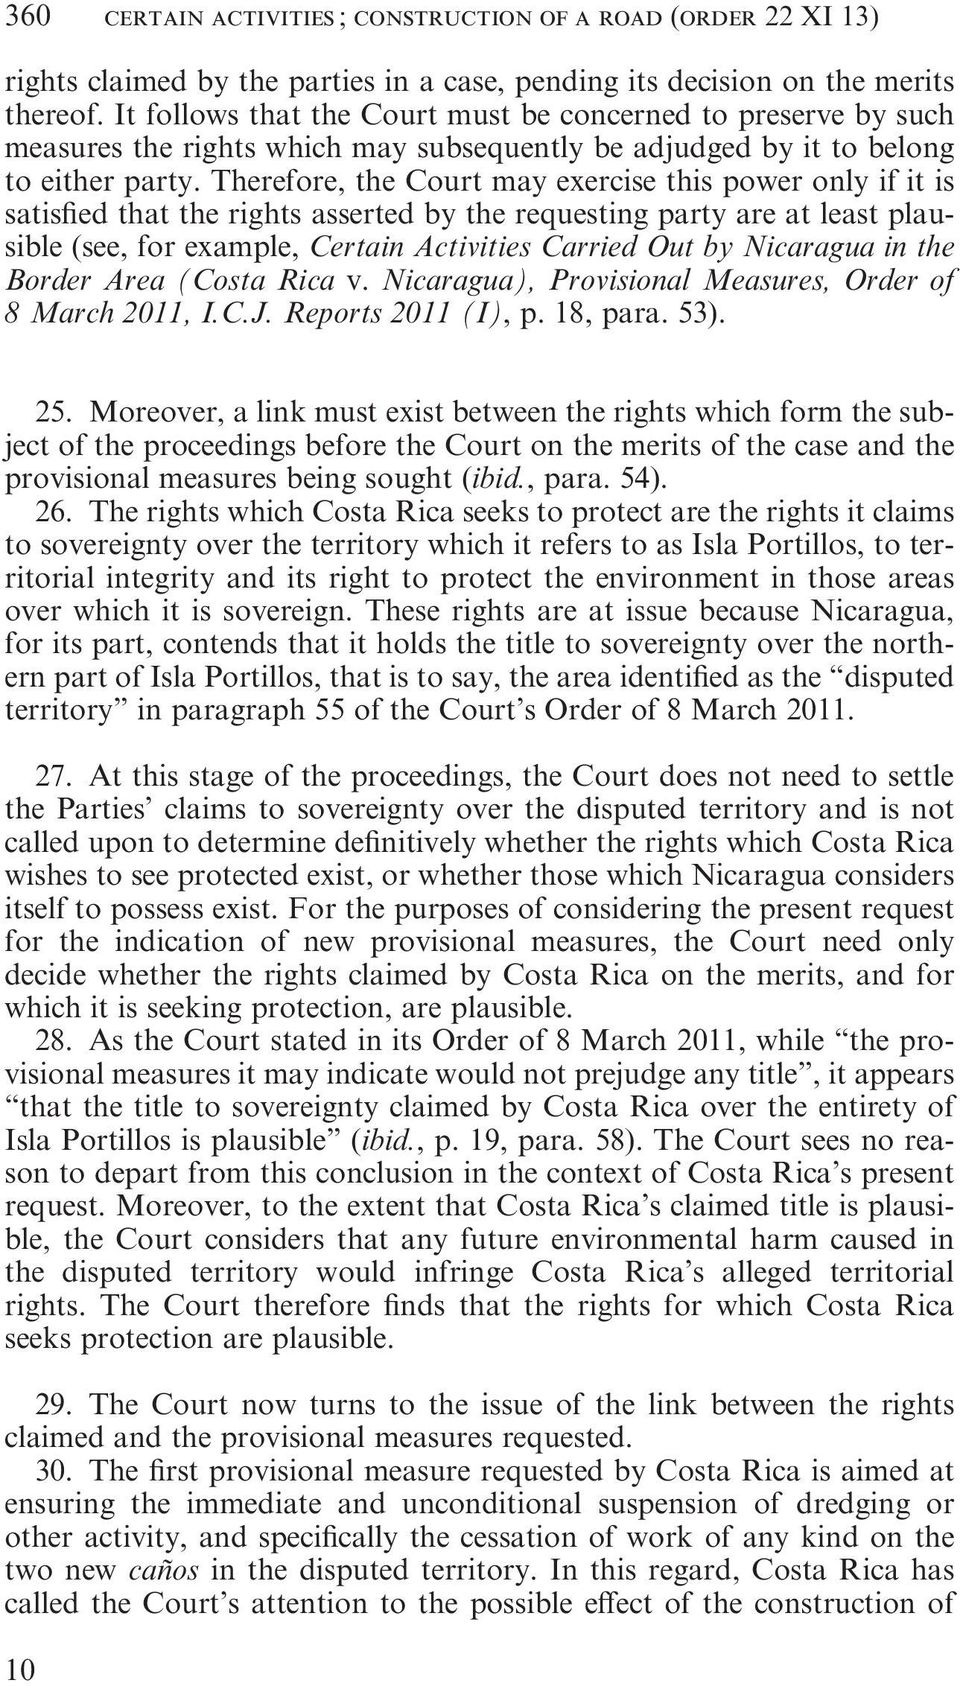 Therefore, the Court may exercise this power only if it is satisfied that the rights asserted by the requesting party are at least plausible (see, for example, Certain Activities Carried Out by